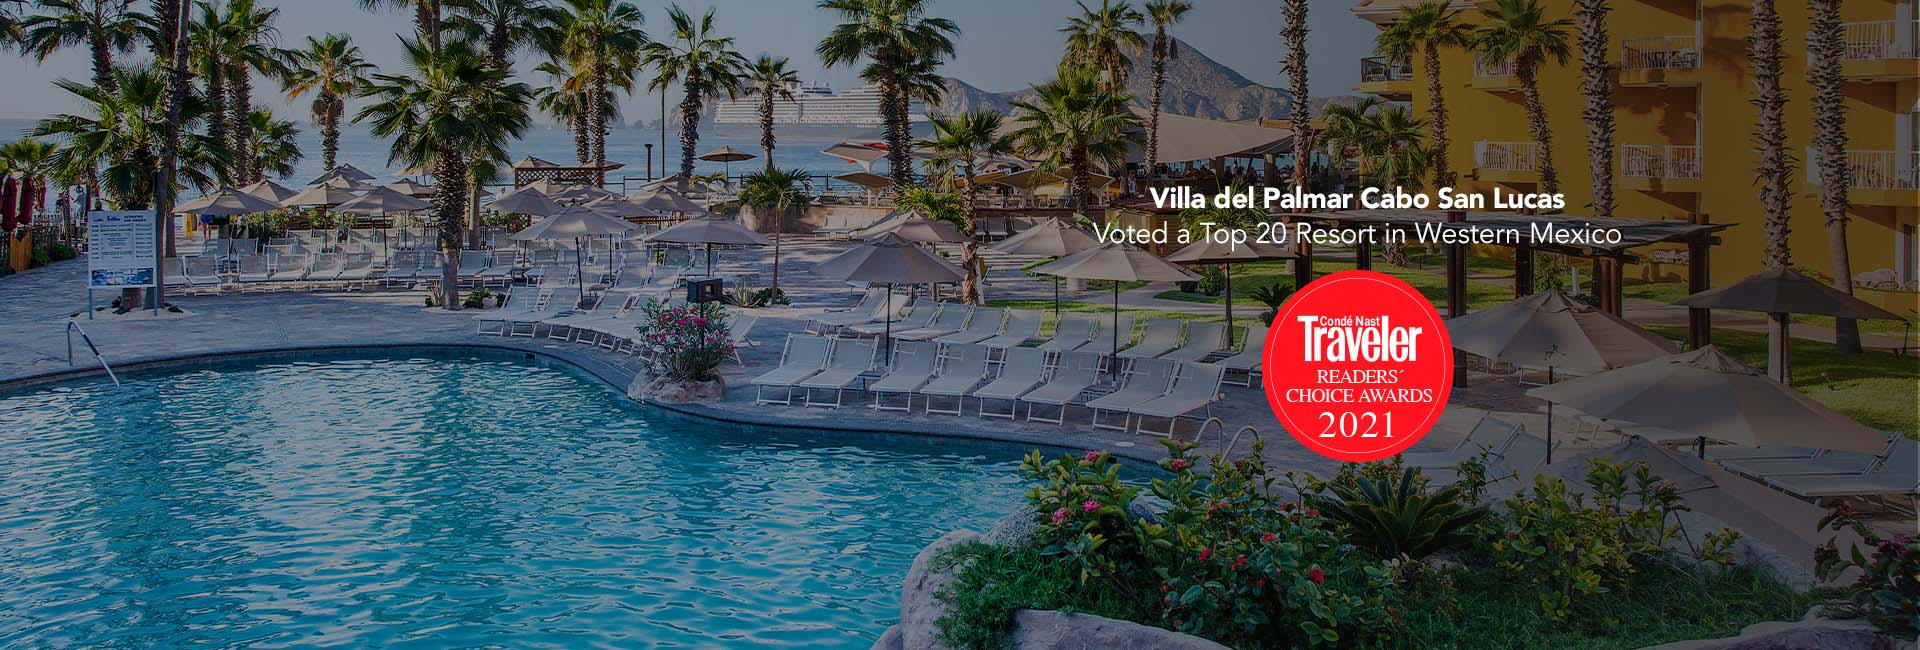 Villa del palmar cabo san lucas among the top 20 resorts in western mexico according to the conde nast ranking